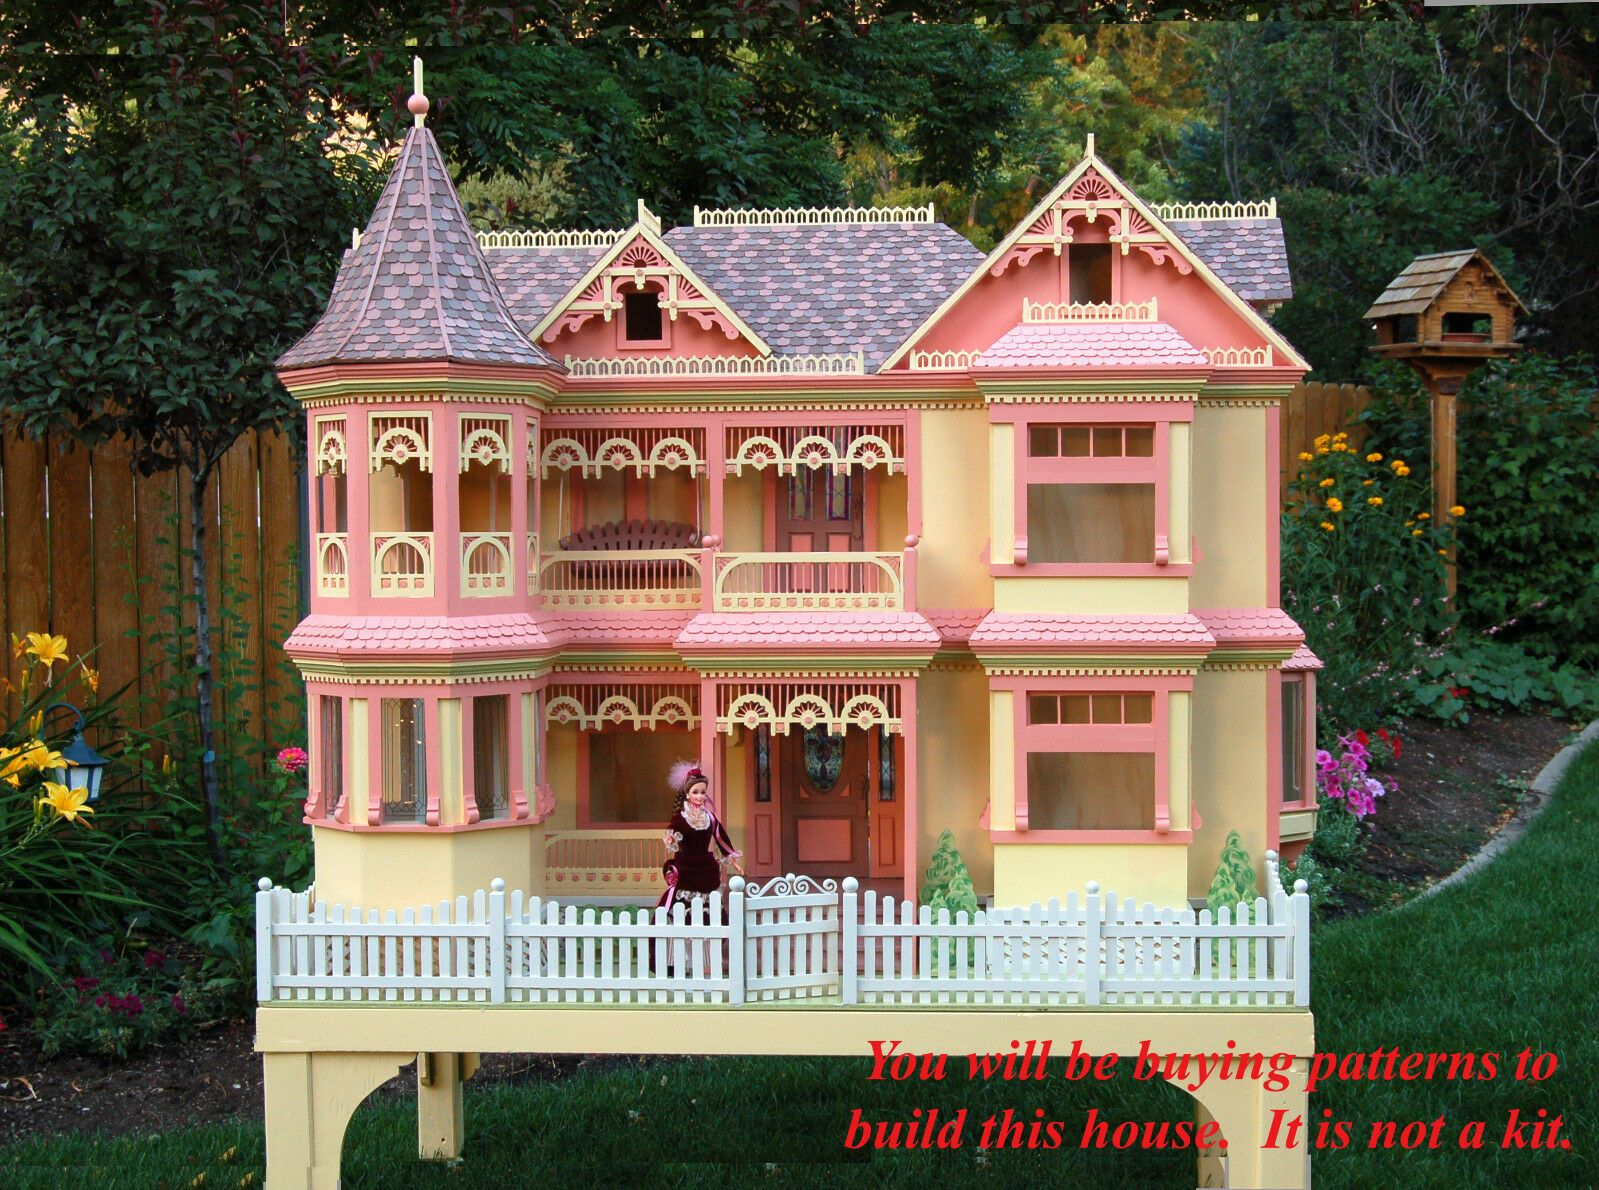 Details about Patterns to cut wood to build a Victorian Barbie doll house